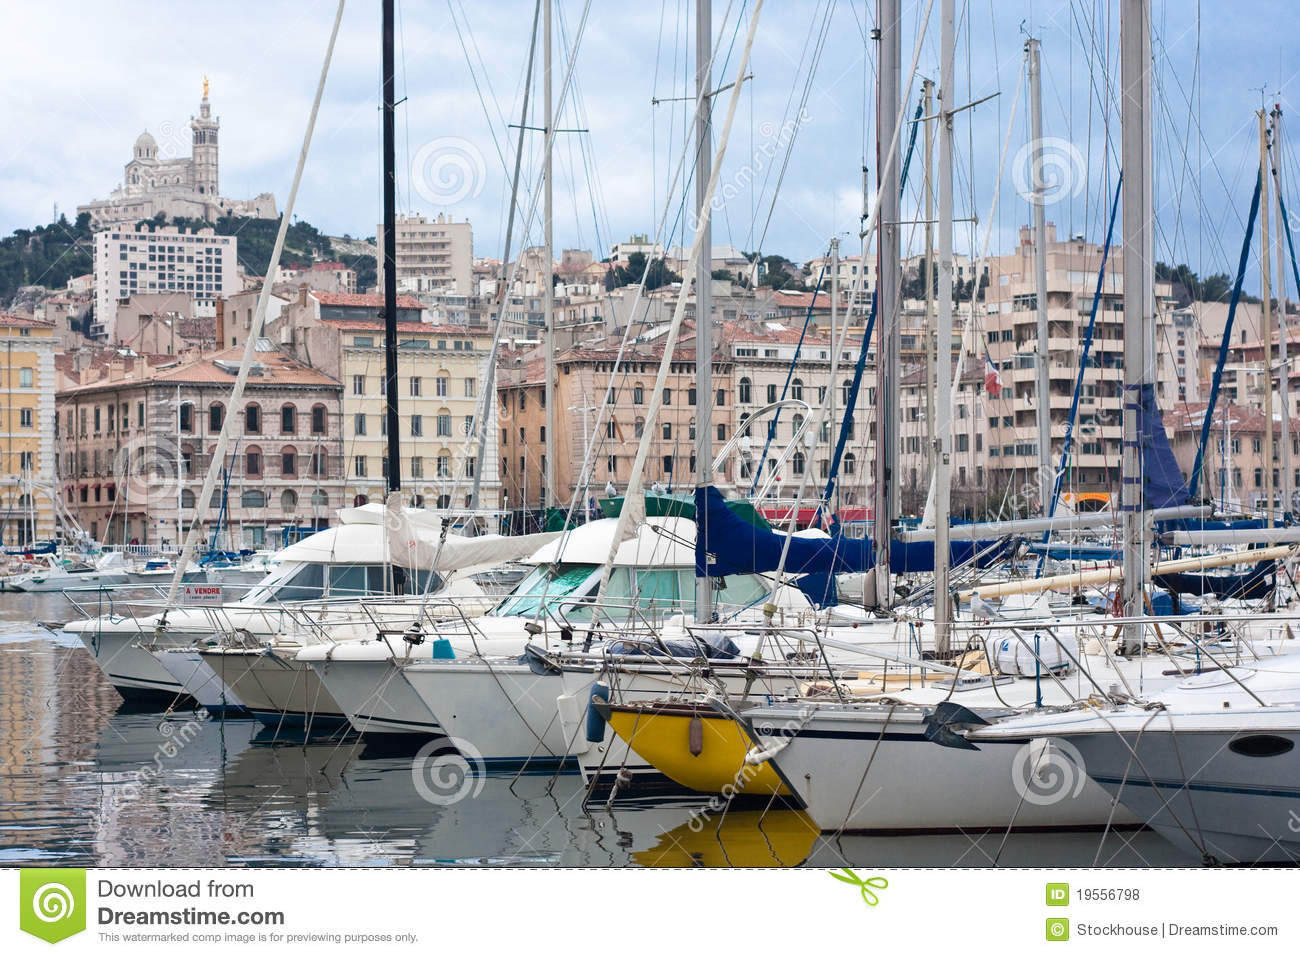 Vieux port of marseille stock photo image of landscape 19556798 - Mcdo vieux port marseille ...